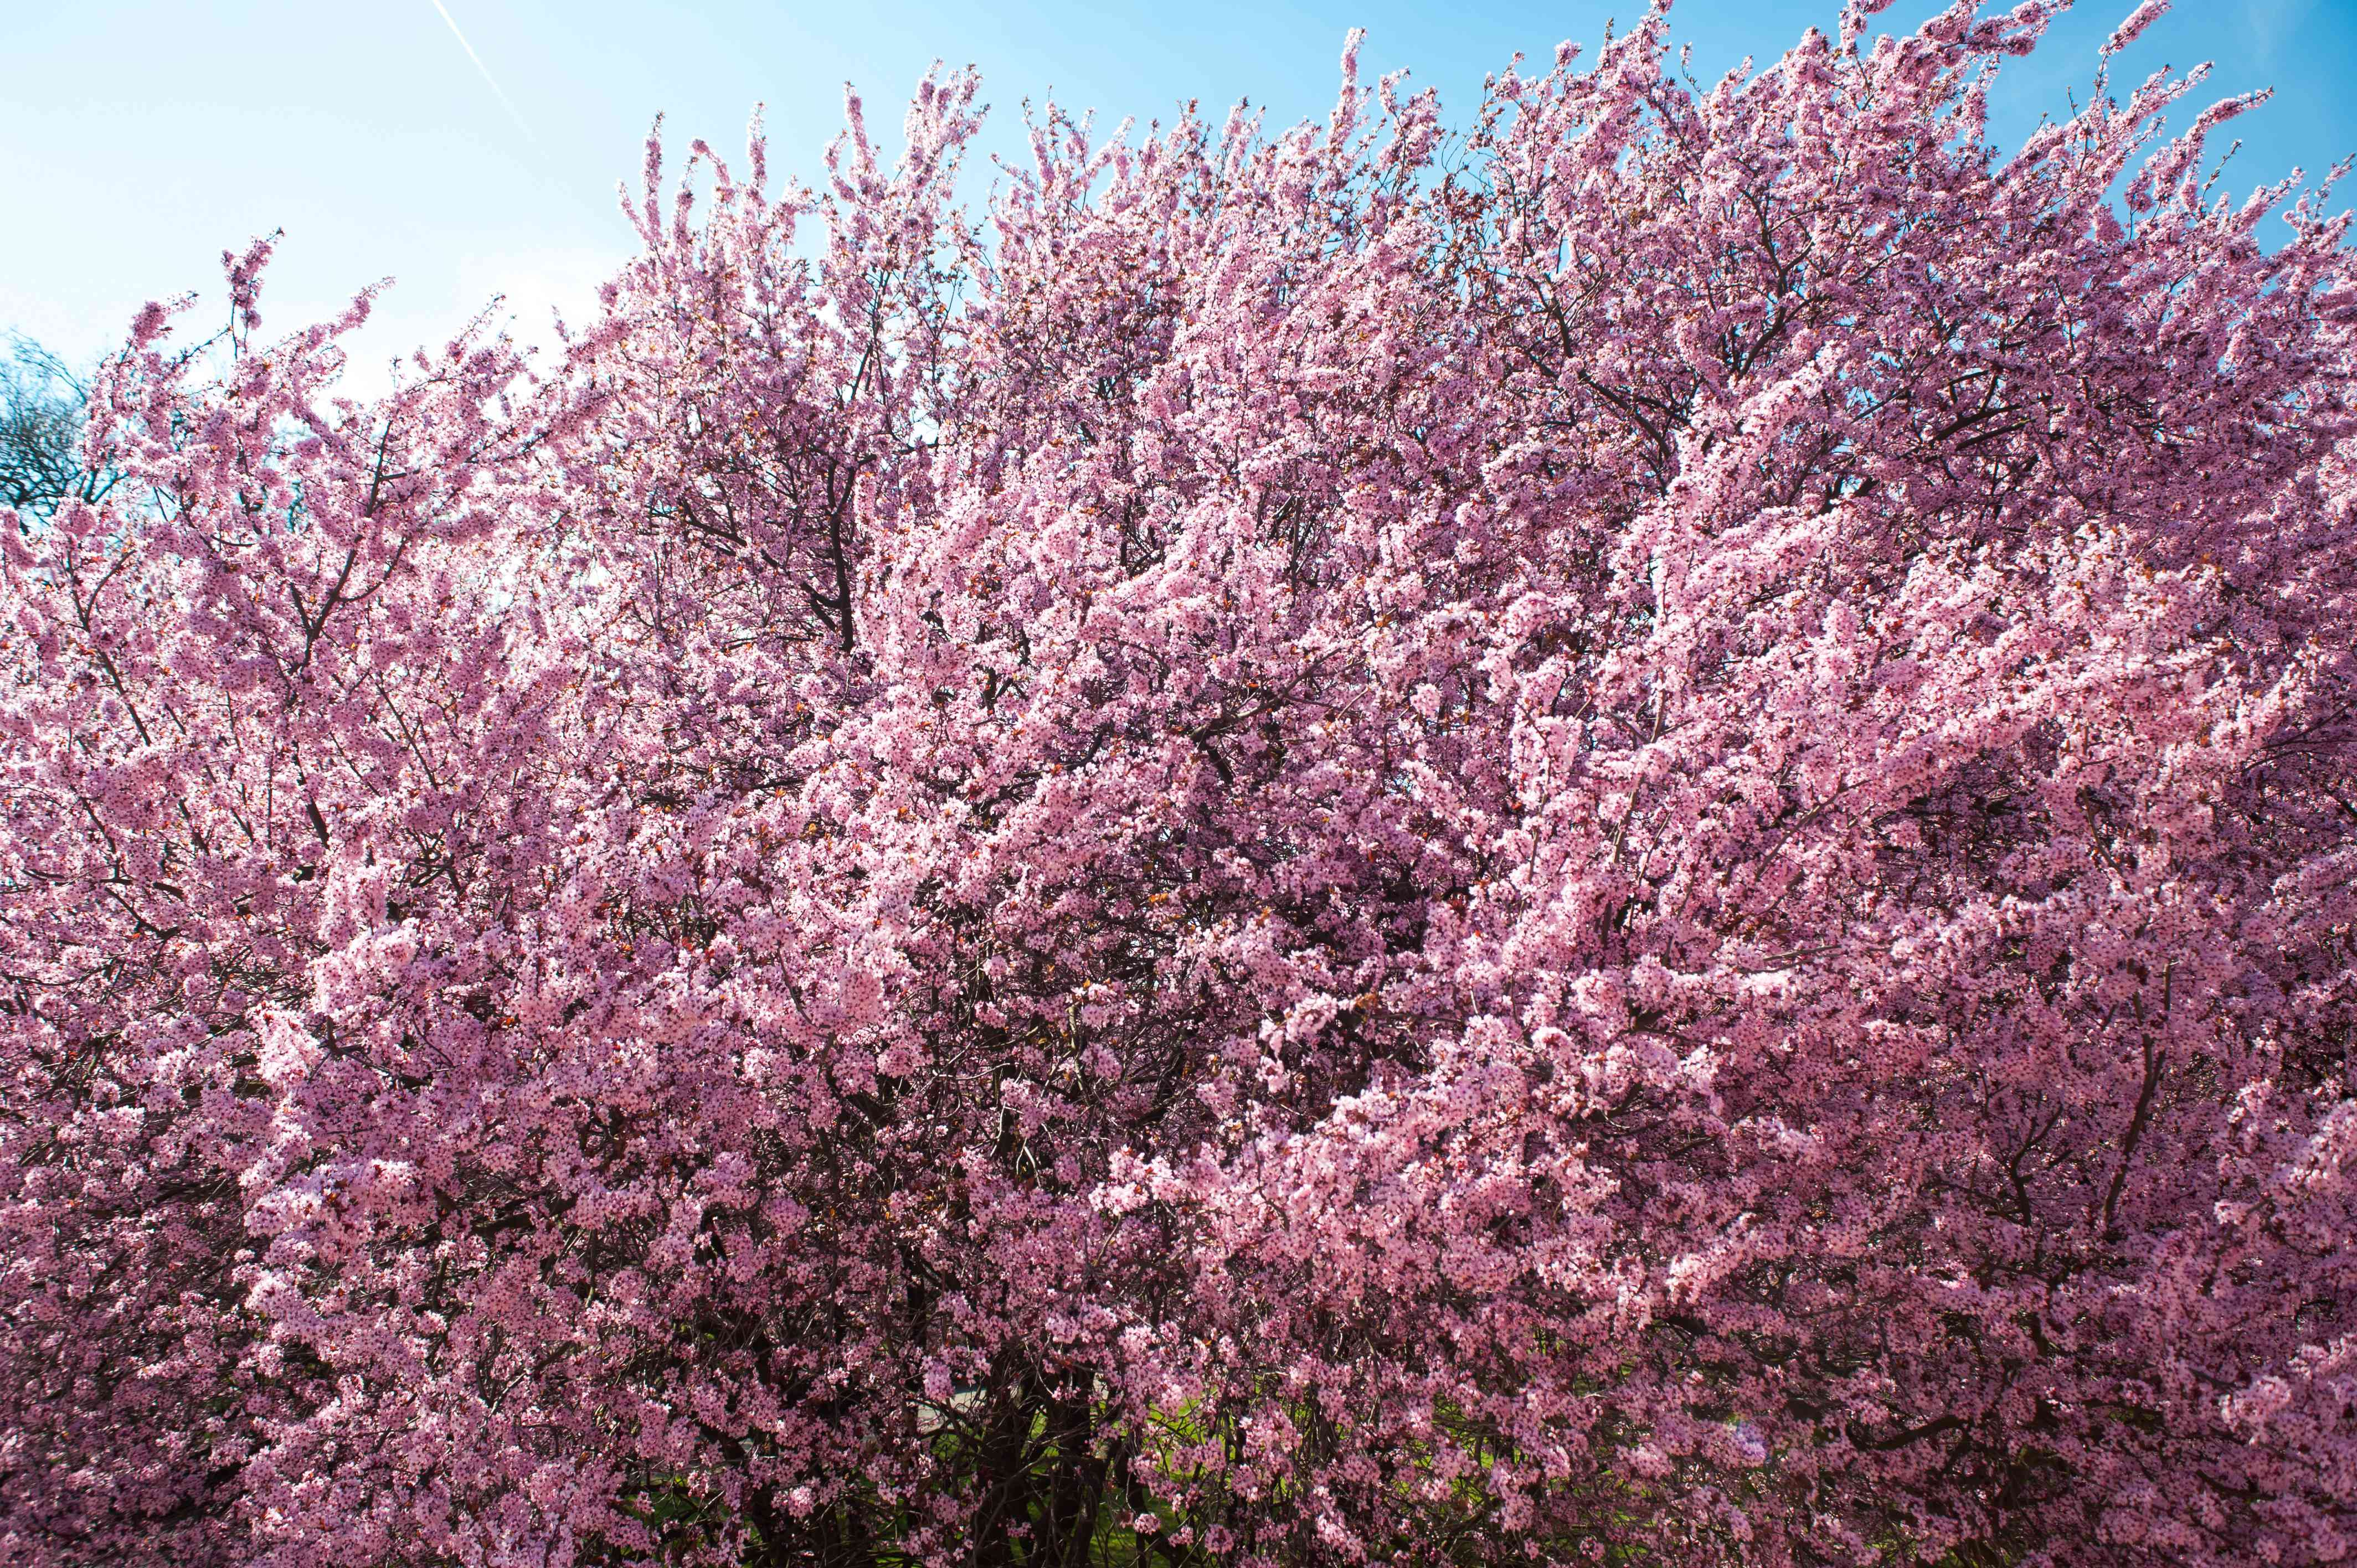 Purple leaf sand cherry tree with fluffy branches with pink flowers blowing in wind